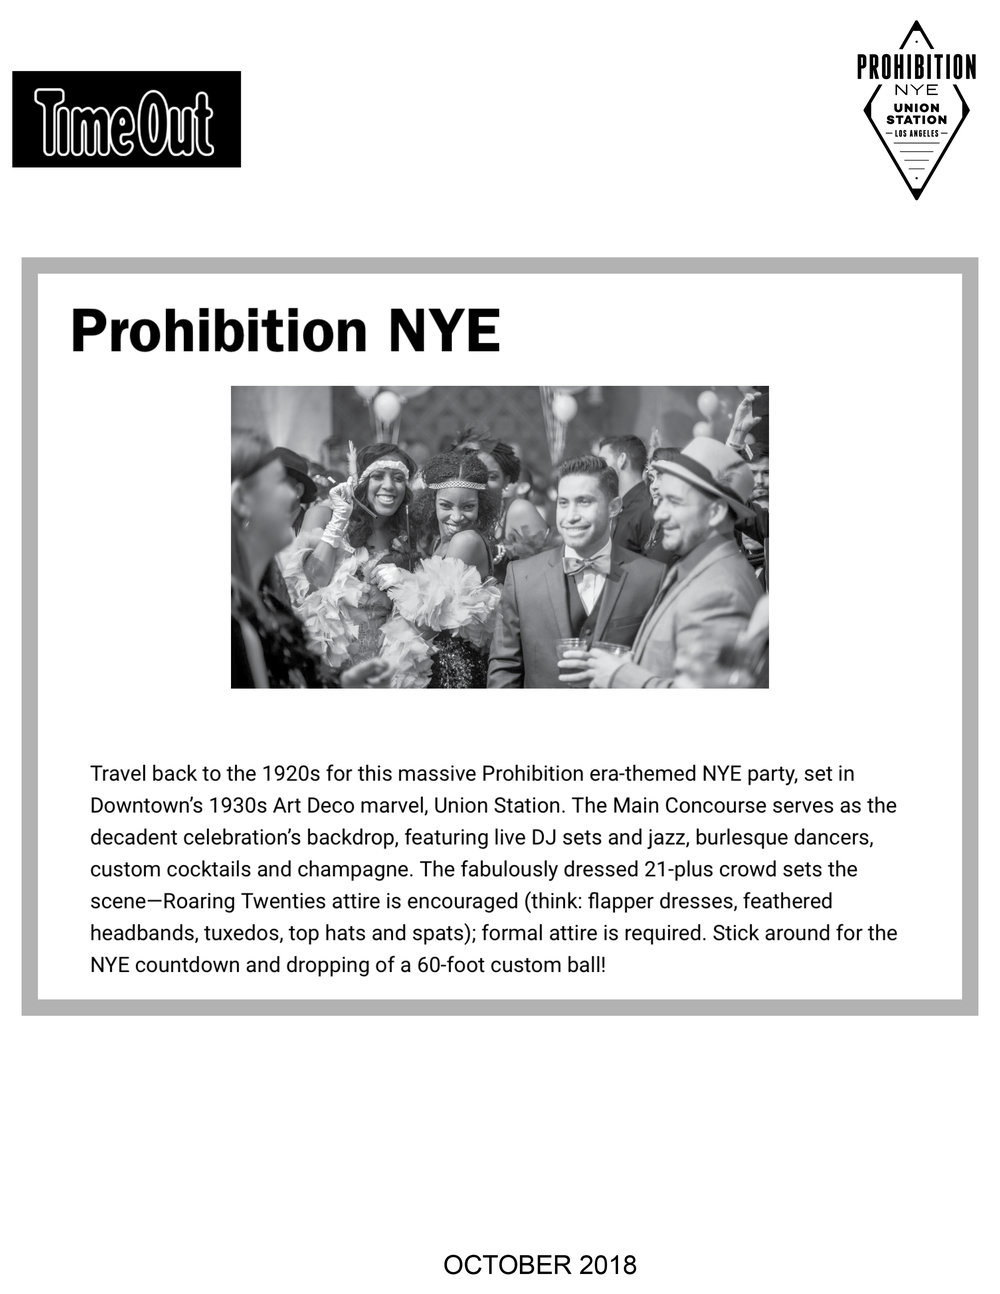 ProhibitionNYE_TimeOut_October2018.jpg